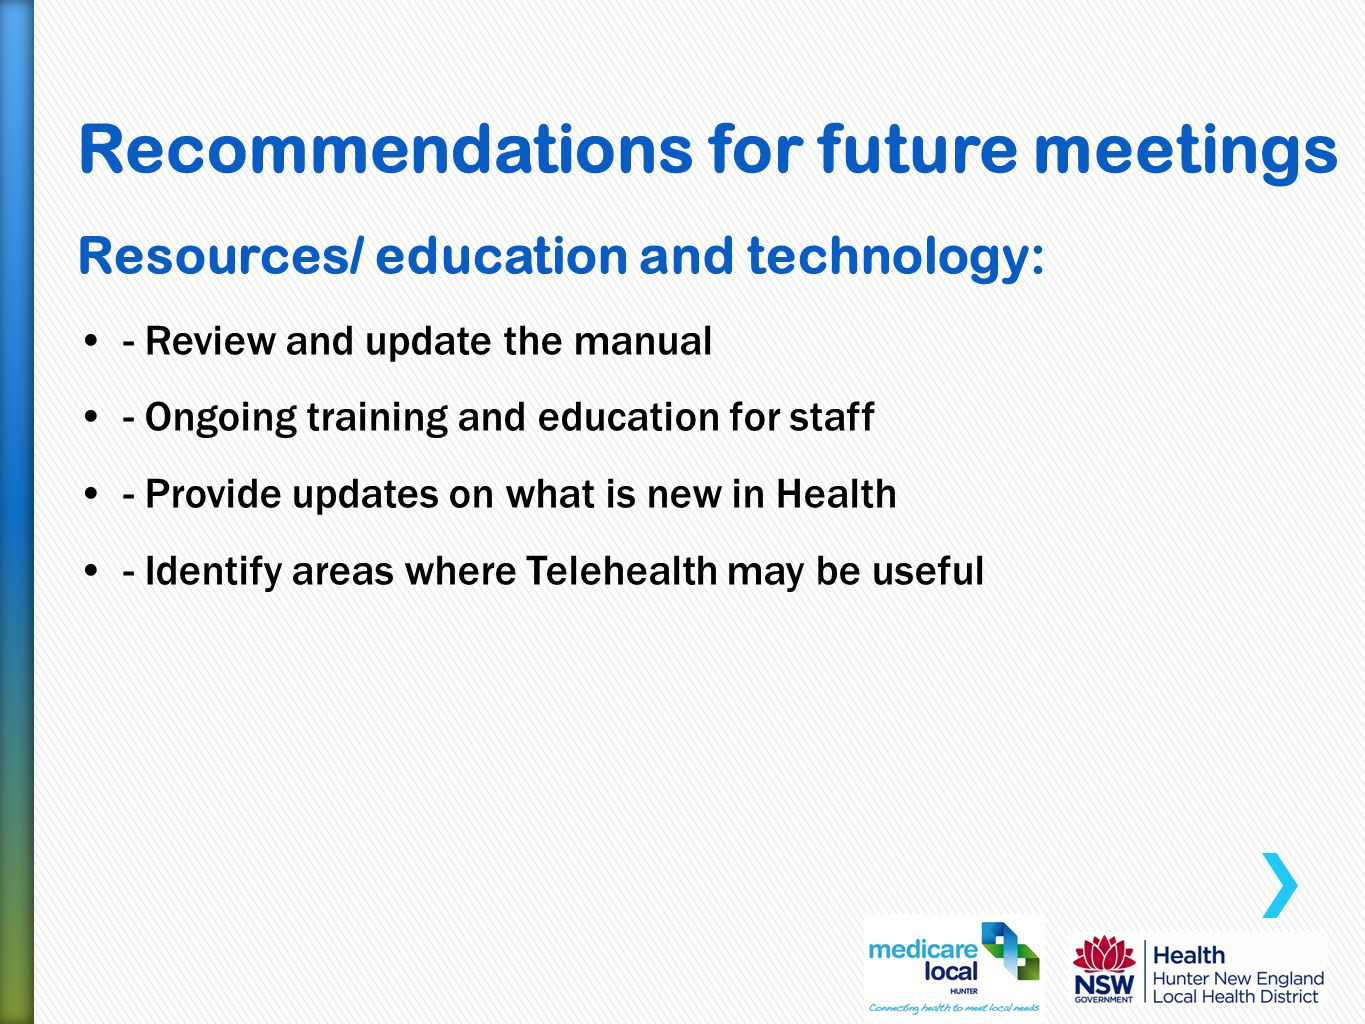 Recommendations for future meetings Resources/ education and technology: -Review and update the manual -Ongoing training and education for staff -Prov